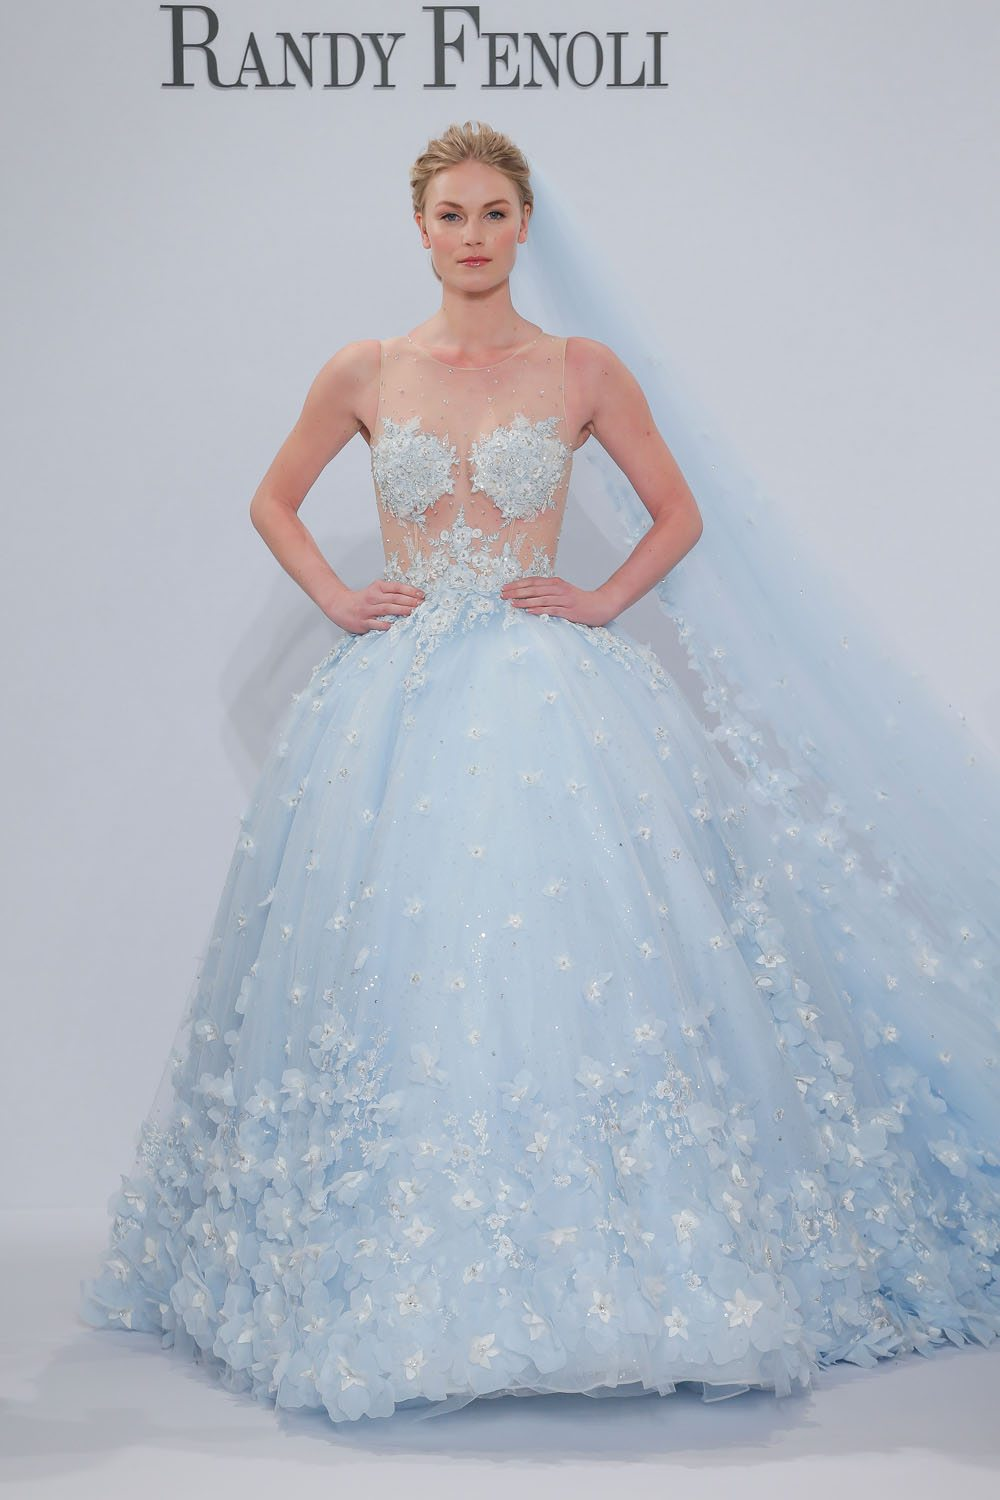 The Top Wedding Dress Trends For Spring 2018 | Weddingbells